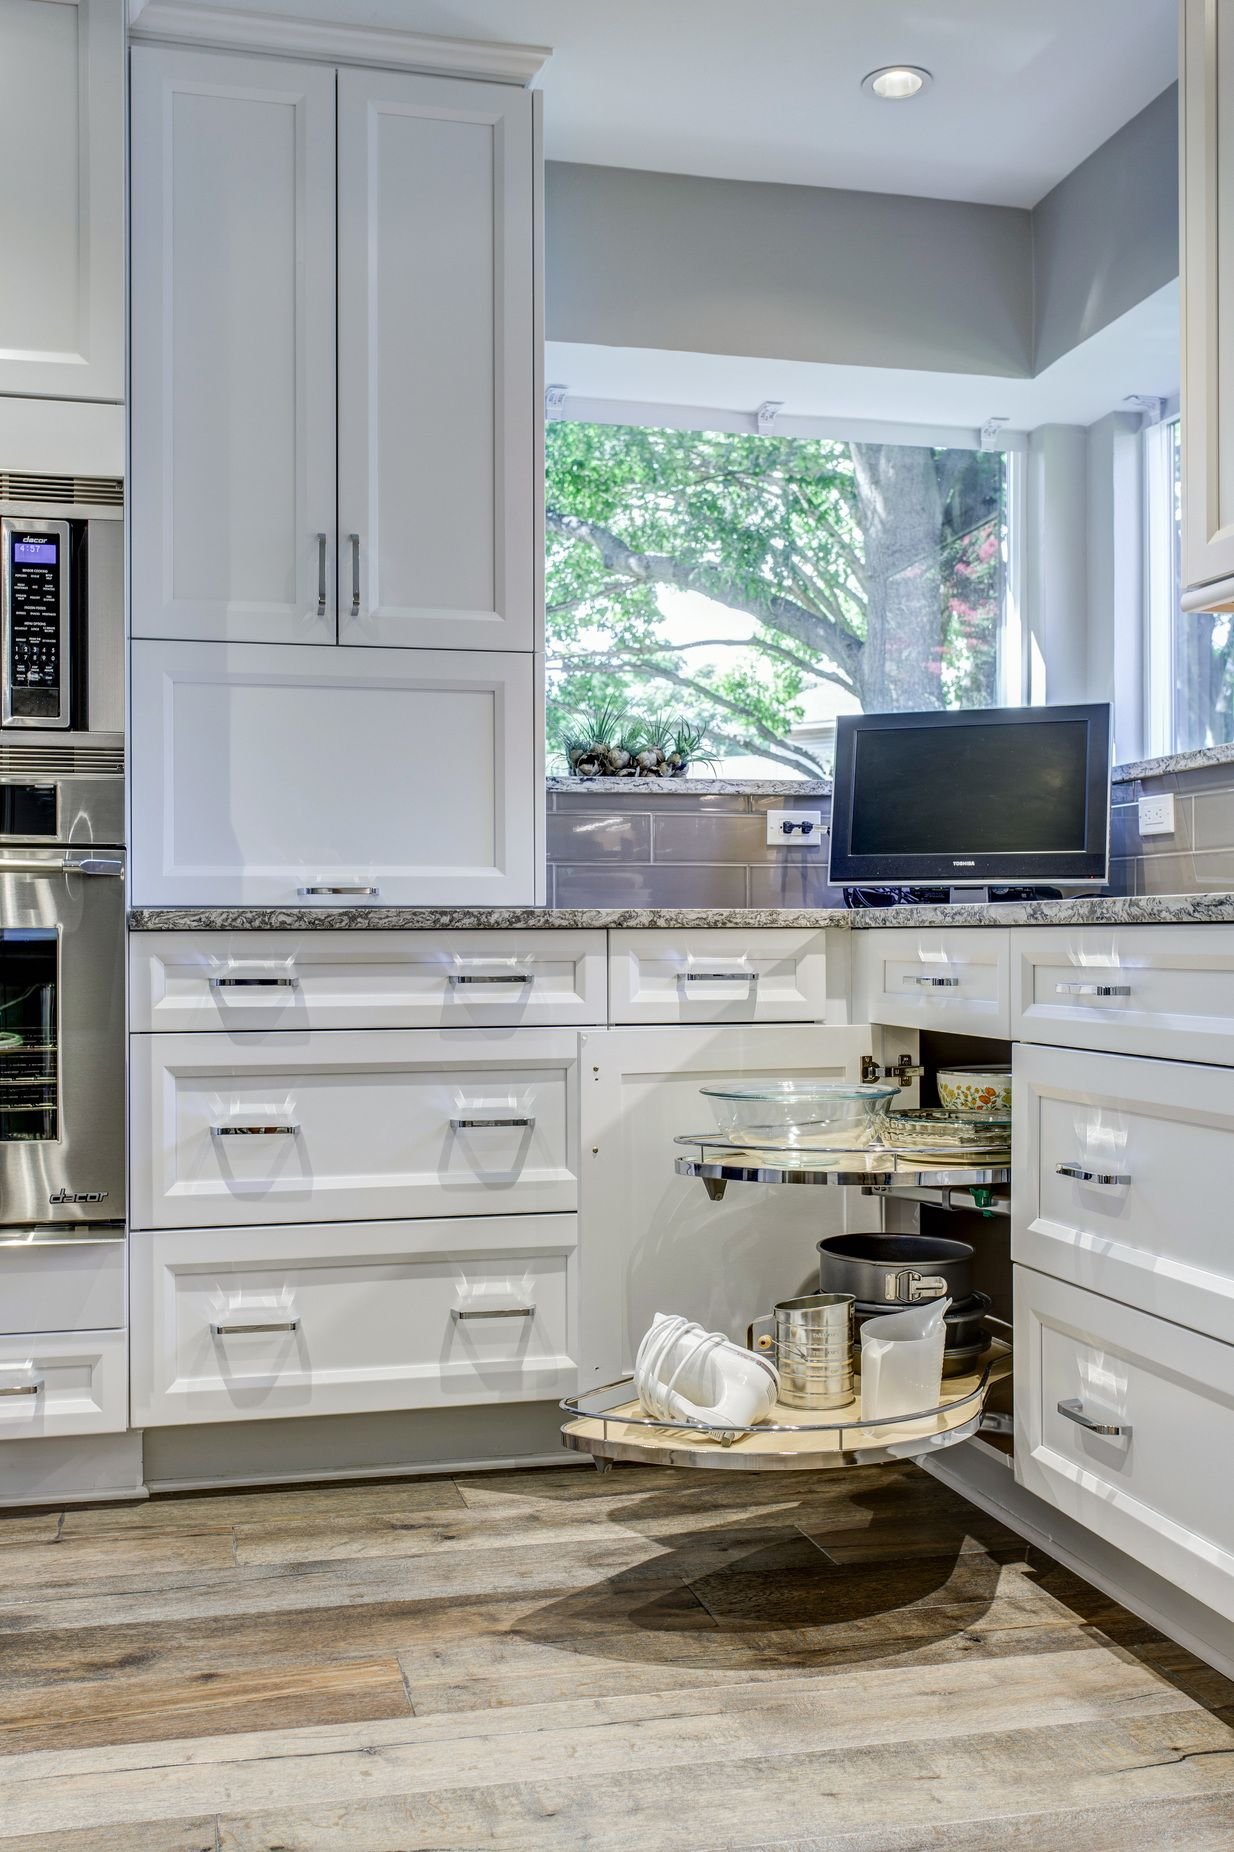 amazing storage solutions by kitchen design concepts kitchen plans kitchen design kitchen on kitchen remodel must haves id=37520